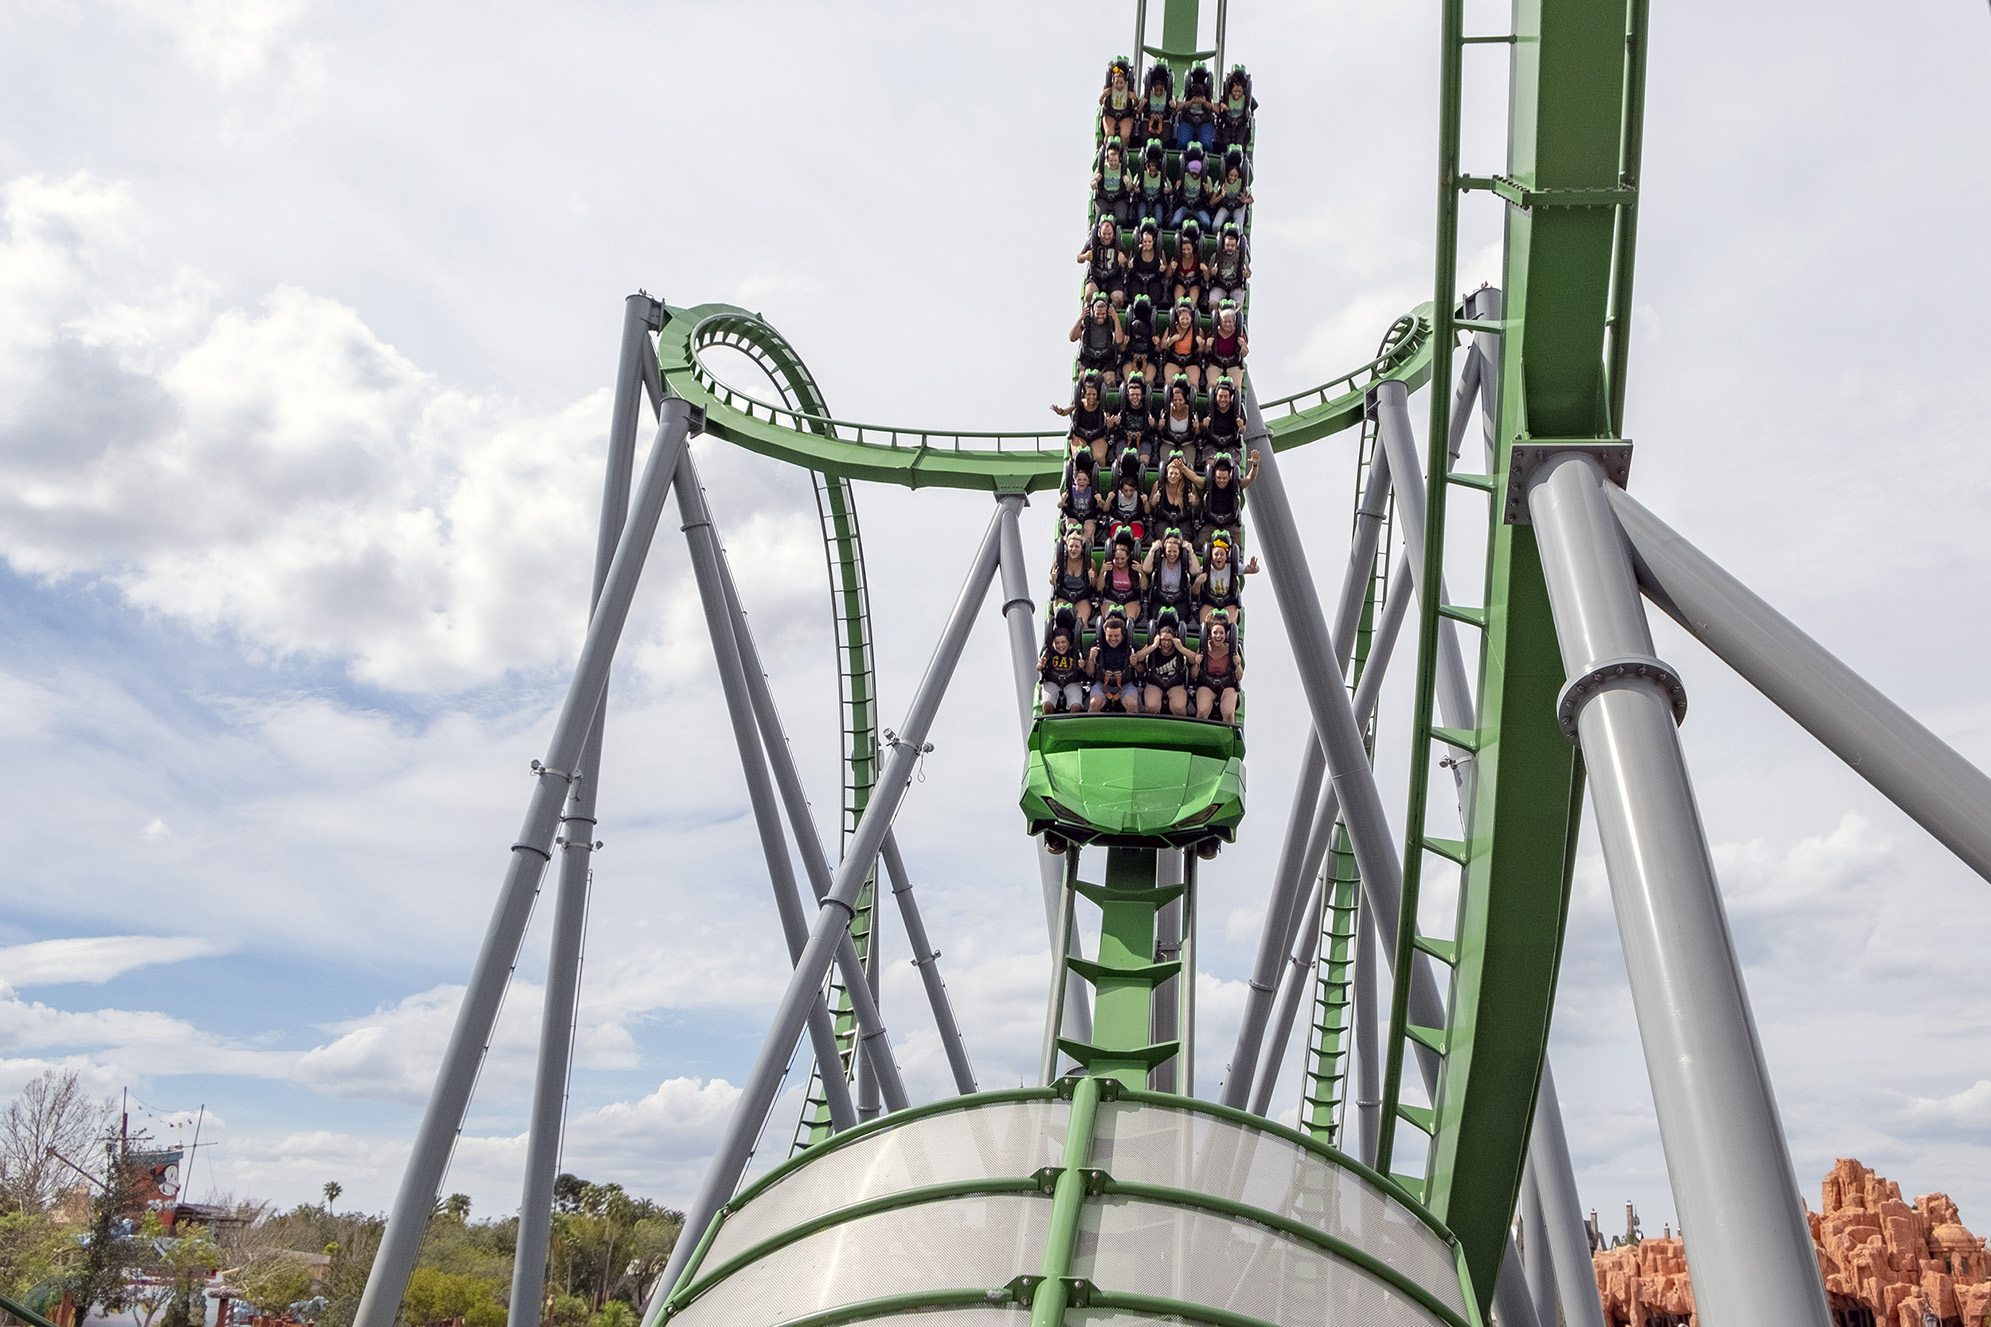 Hulk Coaster Islands of Adventure